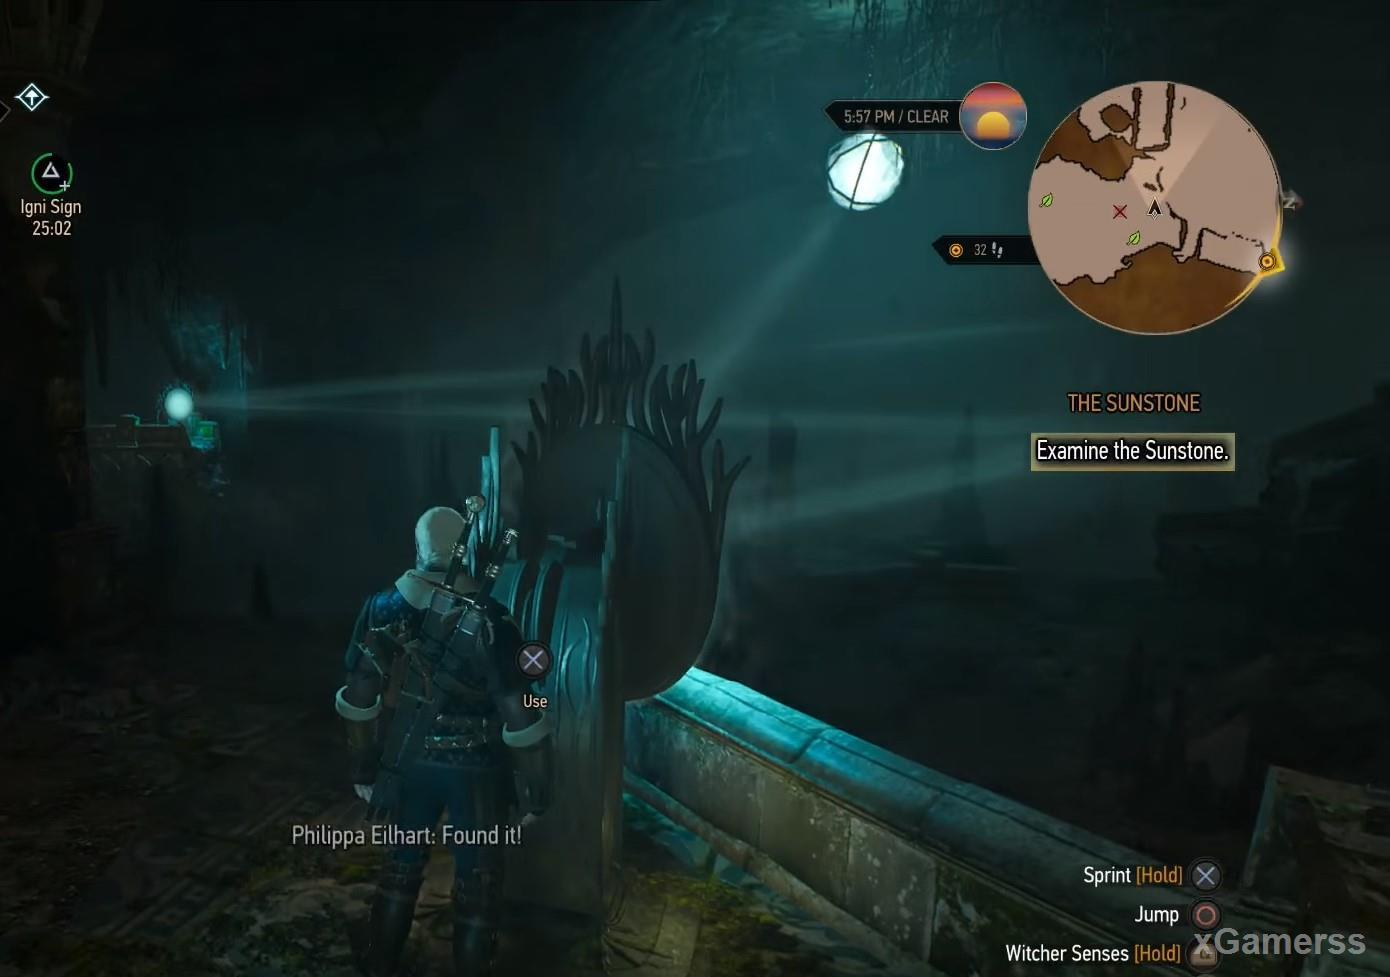 The Witcher 3 Quest The Sunstone Xgamerss